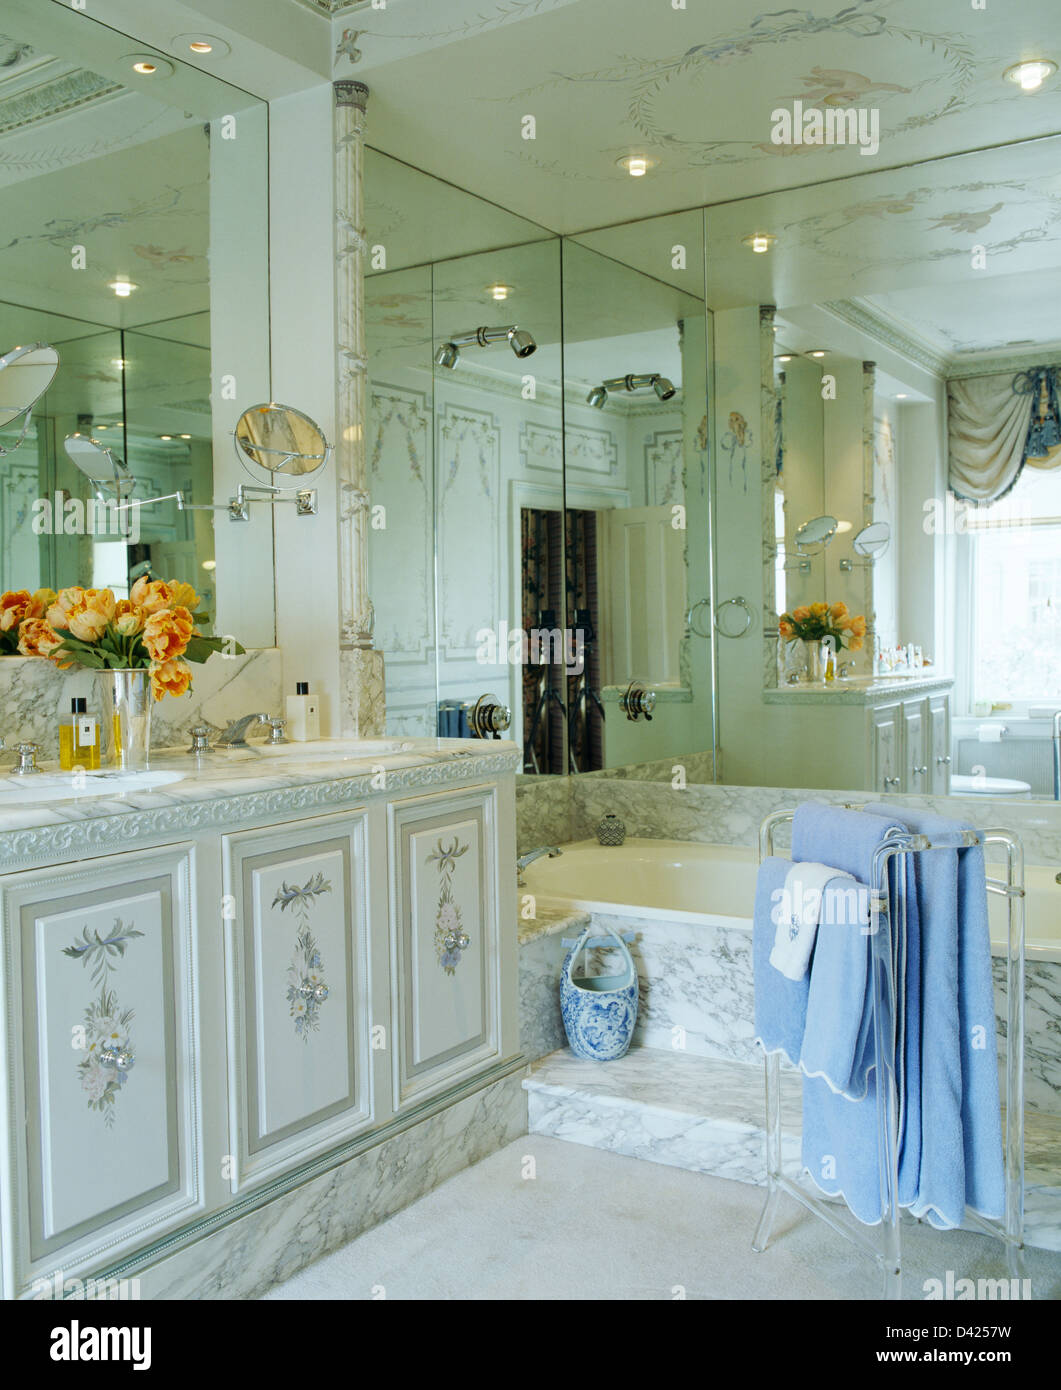 Mirrored walls and marble paneled bath in townhouse